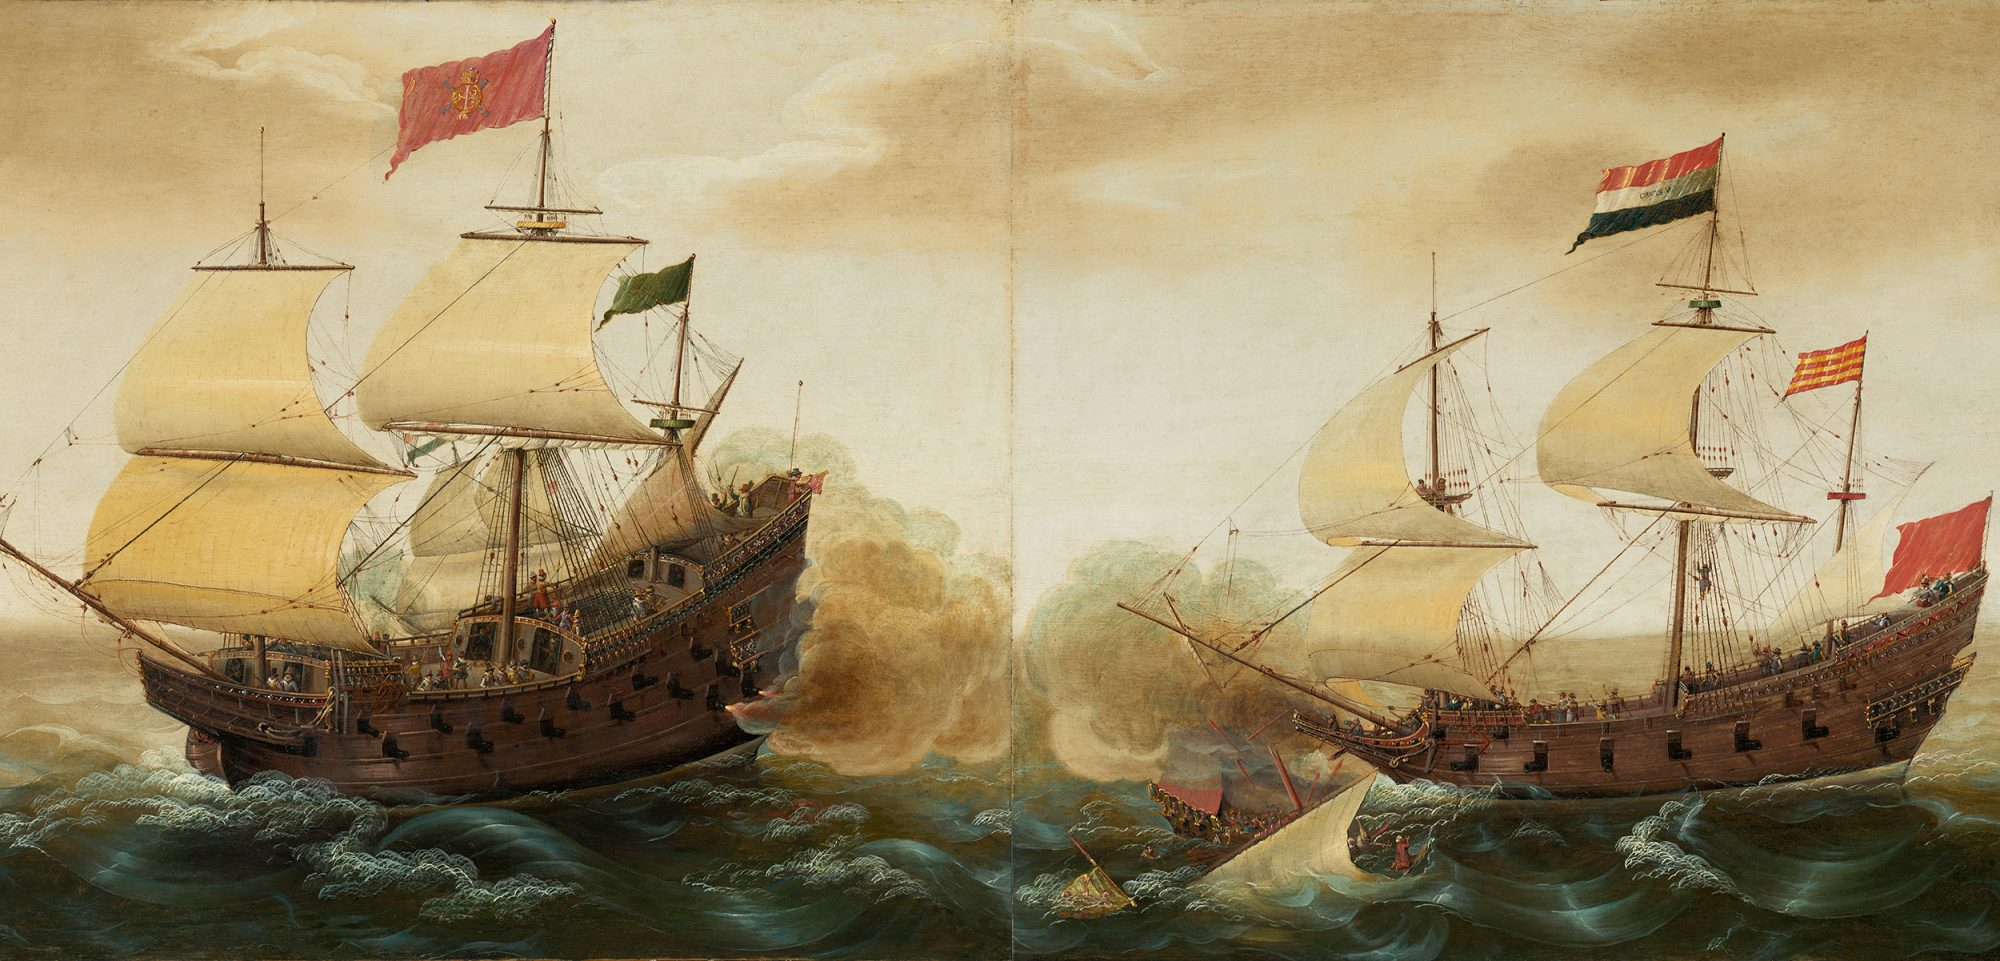 Manila Galleons were part of the history of Guadalupe Island, Painting by Cornelis Verbeeck, circa 1618